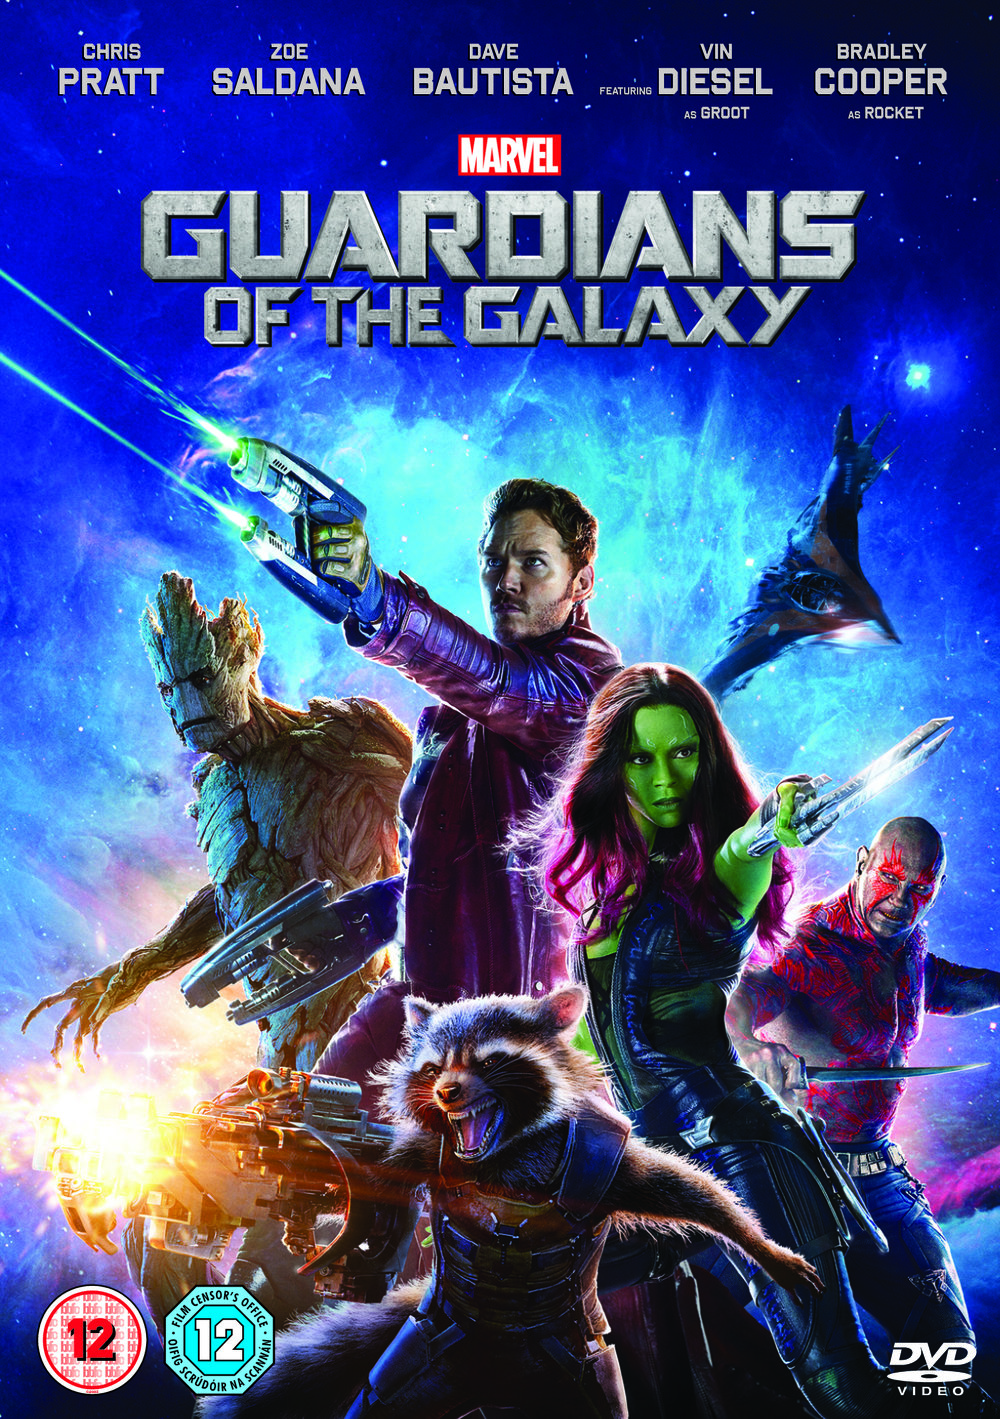 Guardians of the Galaxy(12A) - ©2017 MarvelDates: Thursday 8 JuneScreening: 7:30pm